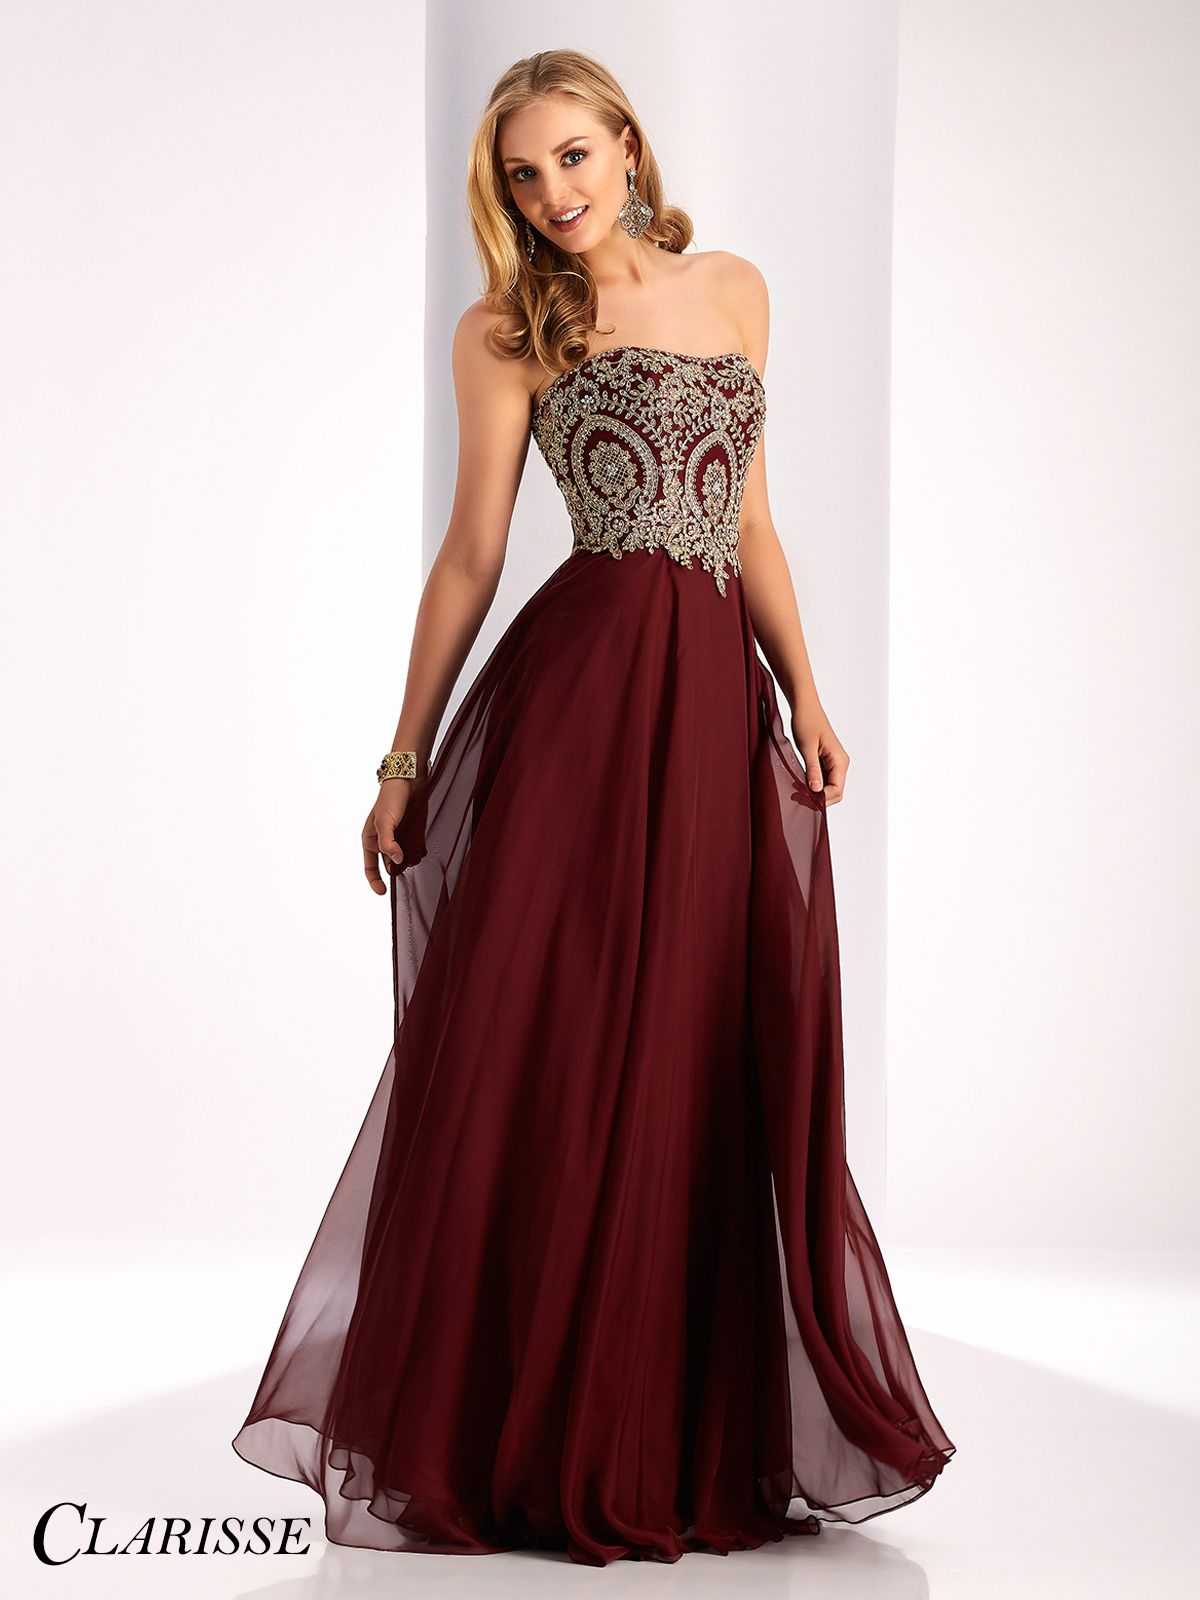 Current prom dress styles